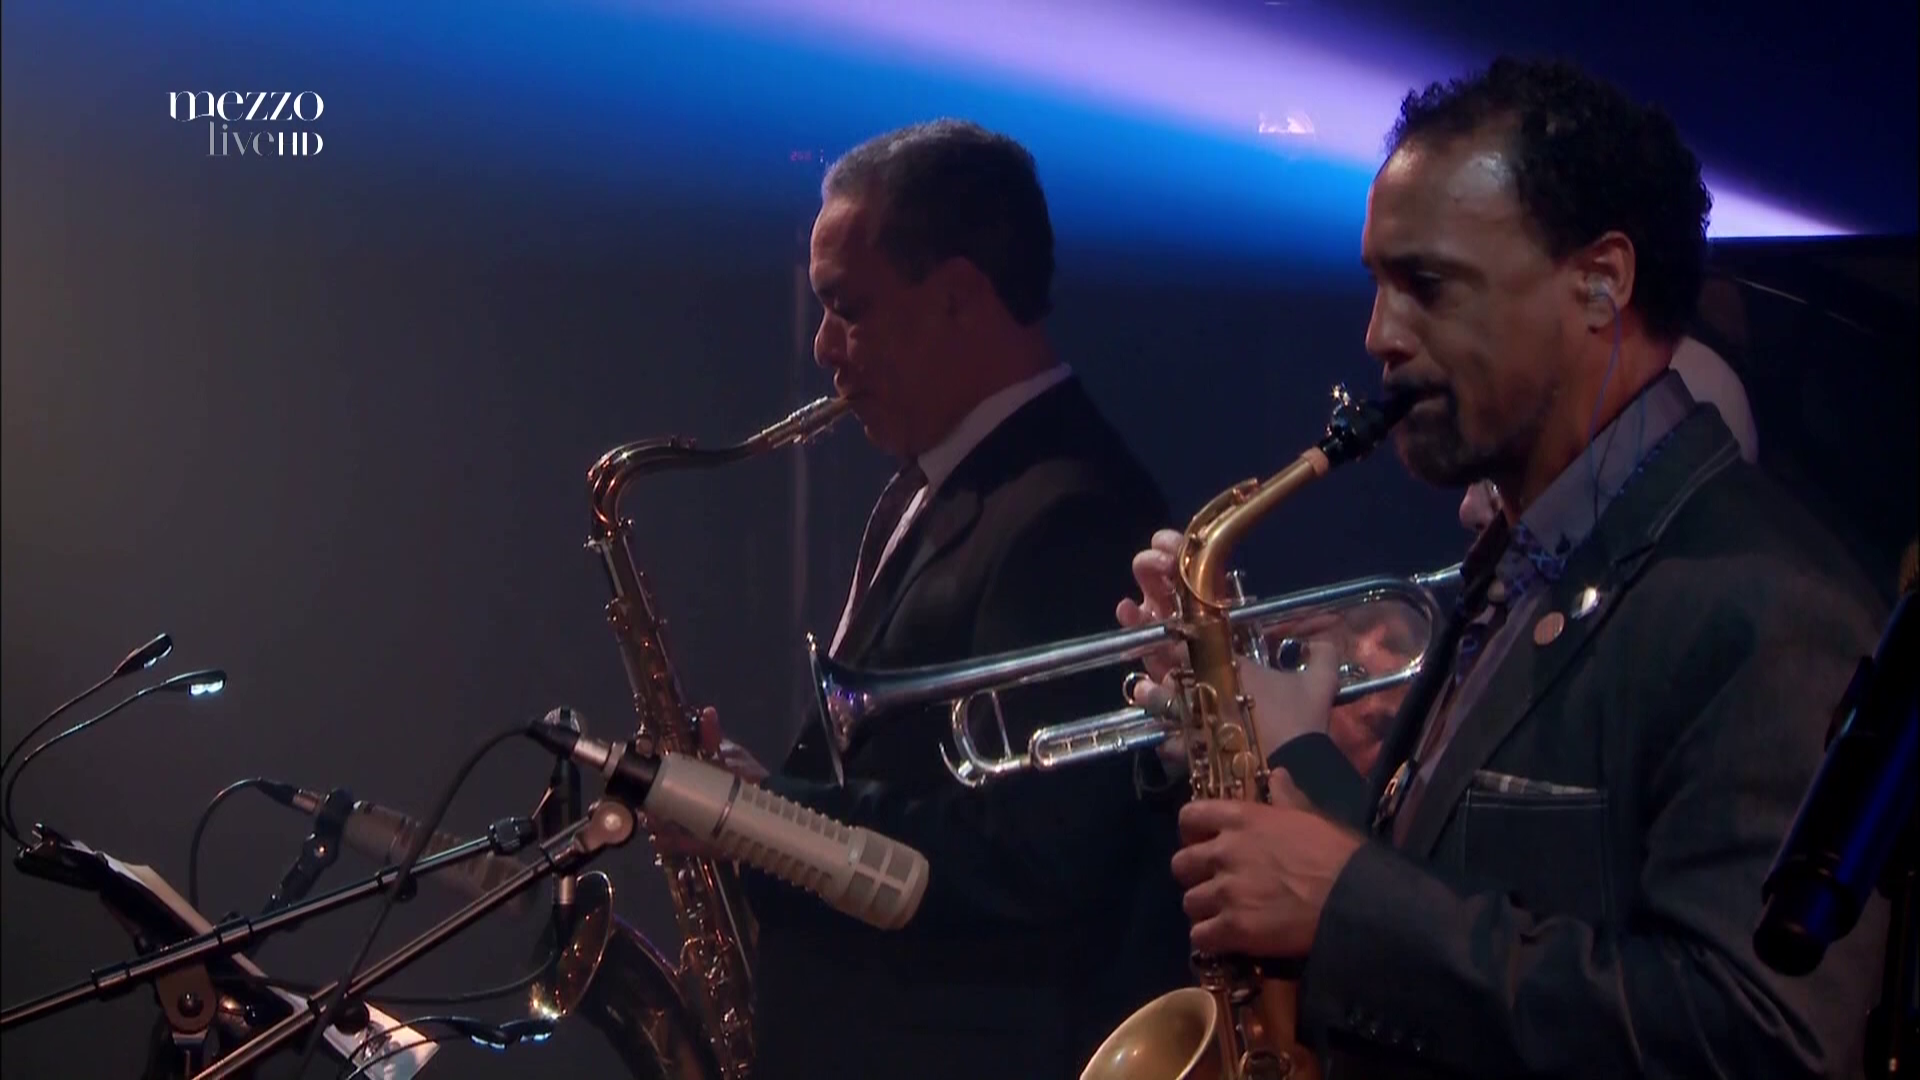 2015 The Messenger Legacy - Live At Jazz en Tete [HDTV 1080i] 2